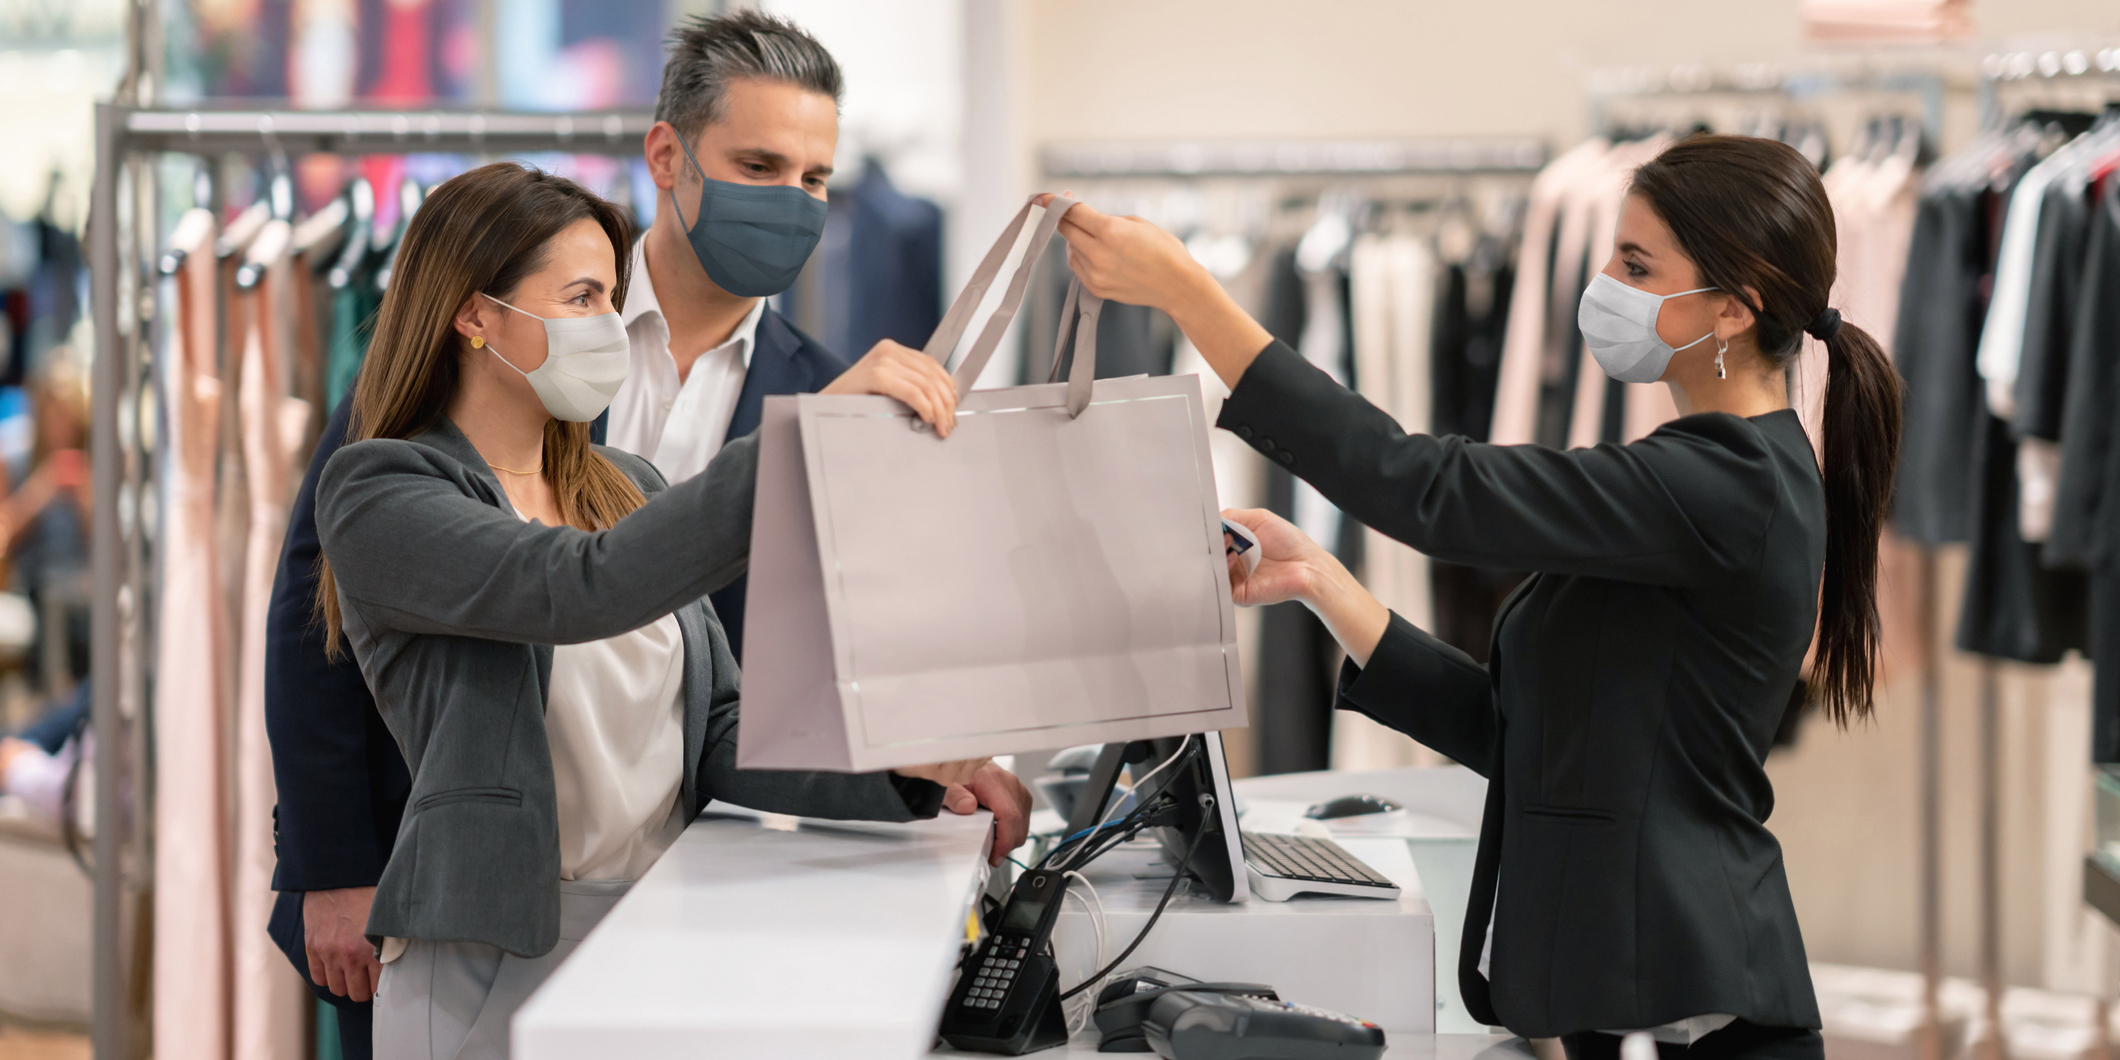 The pandemic and the ensuing employee attrition have more retailers discussing the significance of listening to frontline associates' concerns